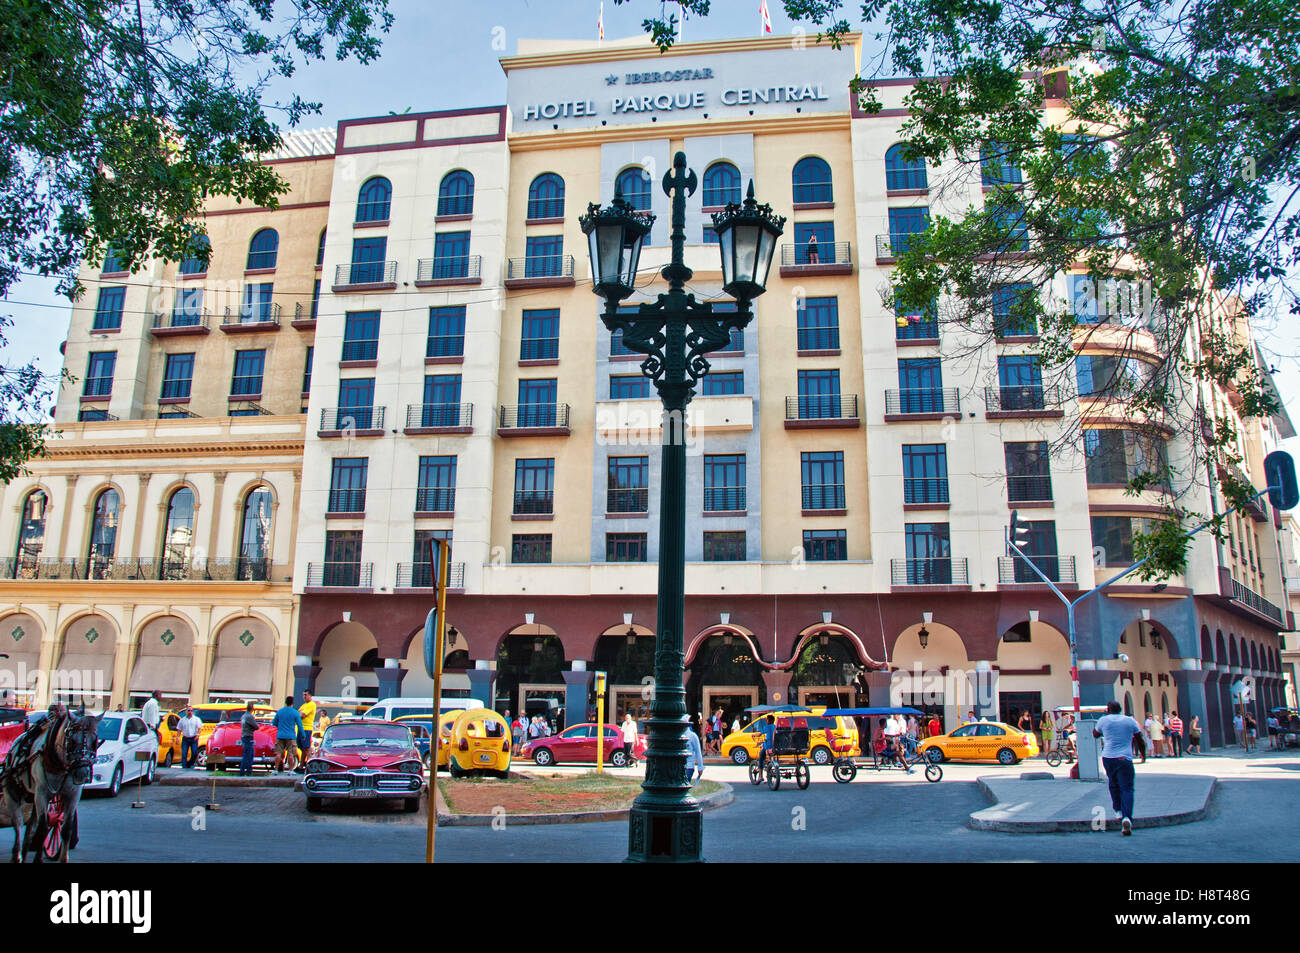 Havana cuba july 11 2016 the luxurious hotel central park restored in 1995 near central park in havana cuba